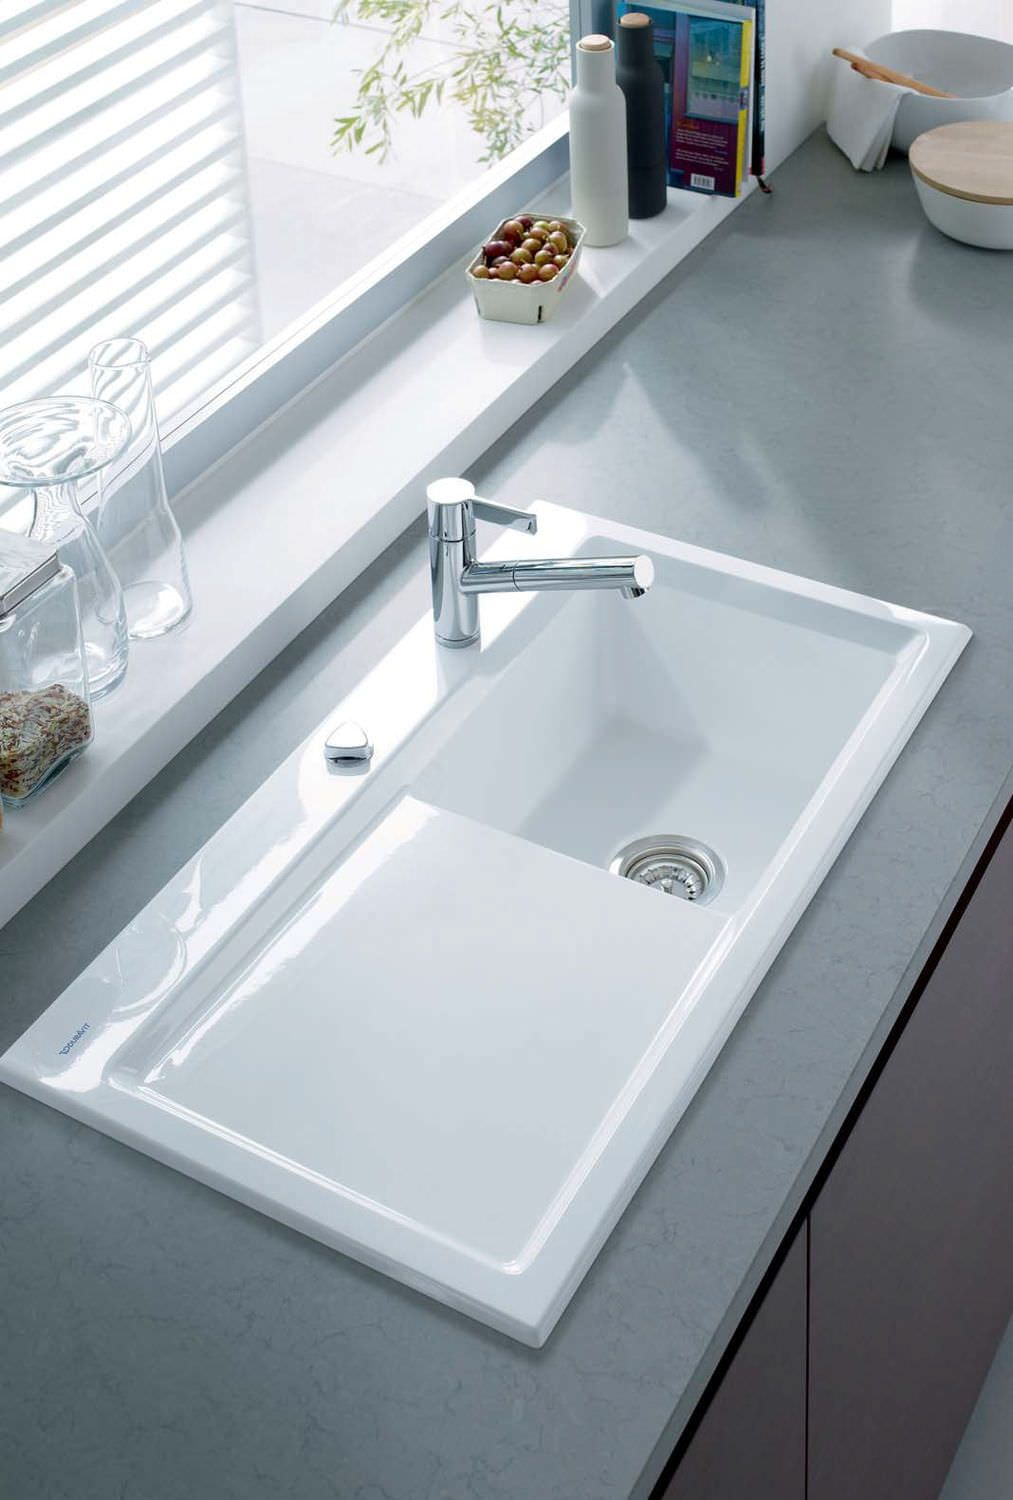 1 bowl kitchen sink ceramic with drainboard 751690 by sieger kitchen sink ceramic with drainboard by sieger design duravit workwithnaturefo